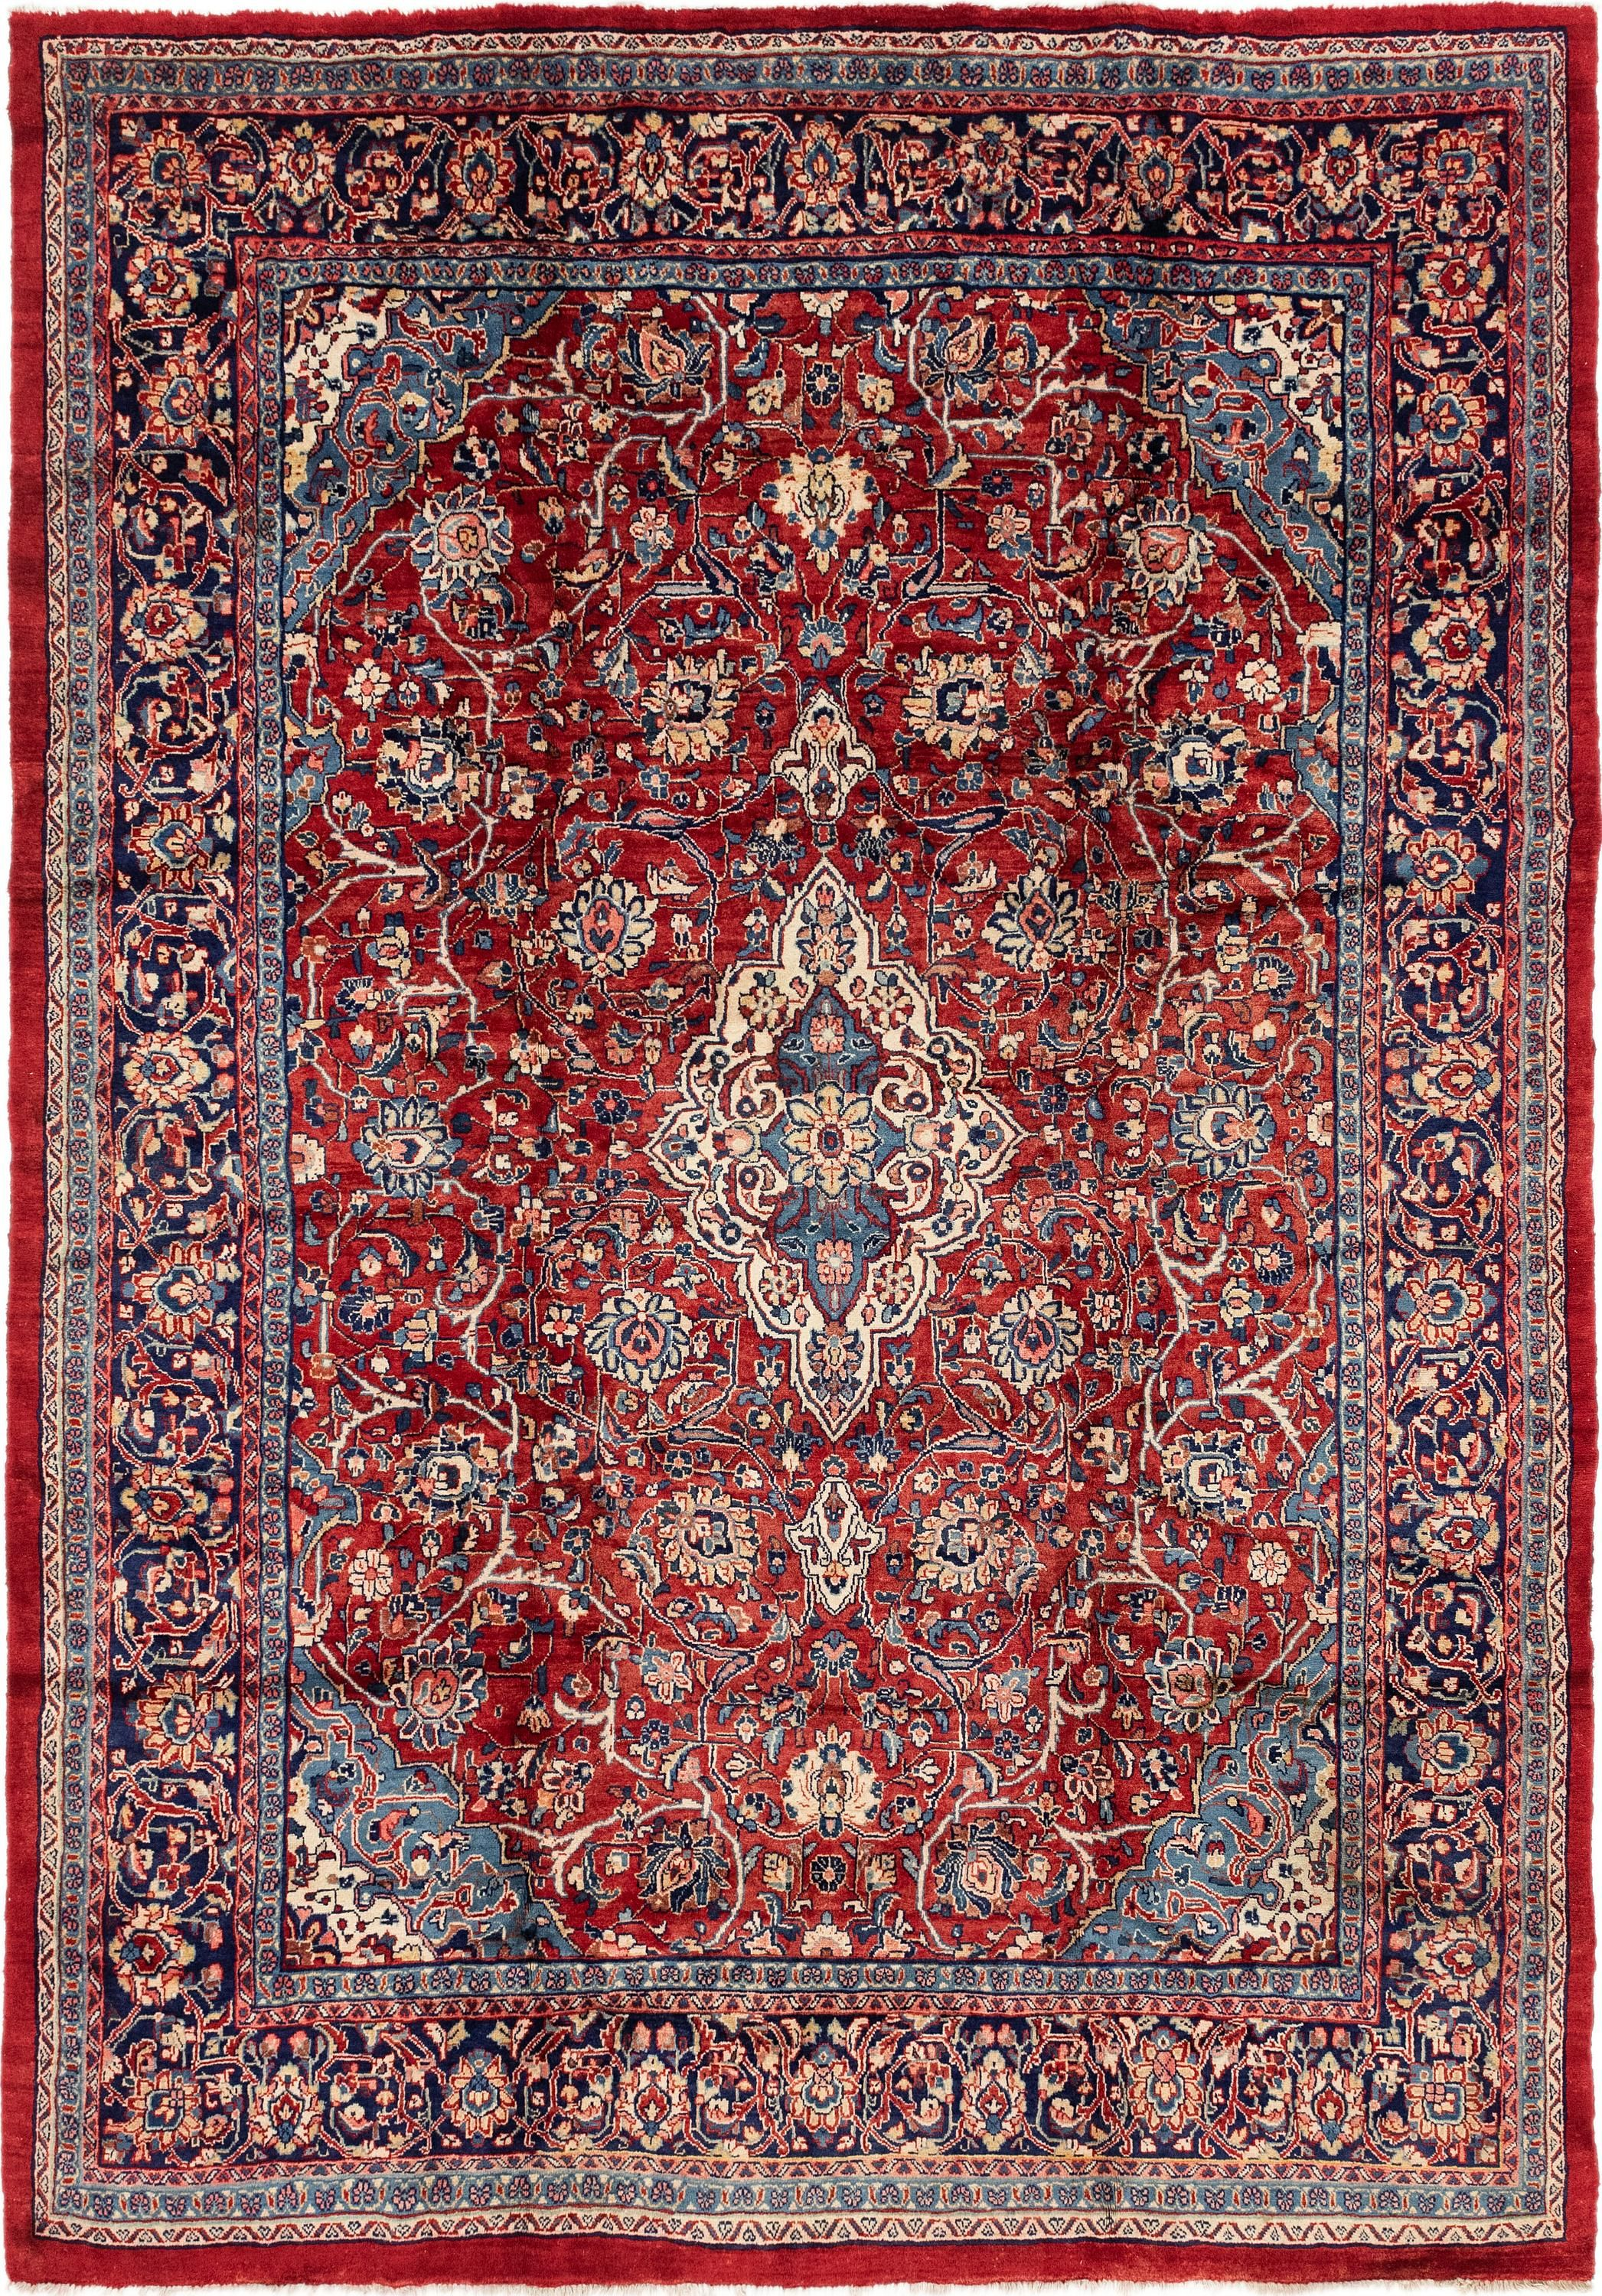 Red 9 2 X 13 Sarough Persian Rug Esalerugs Rugs Large Area Rugs Persian Rug